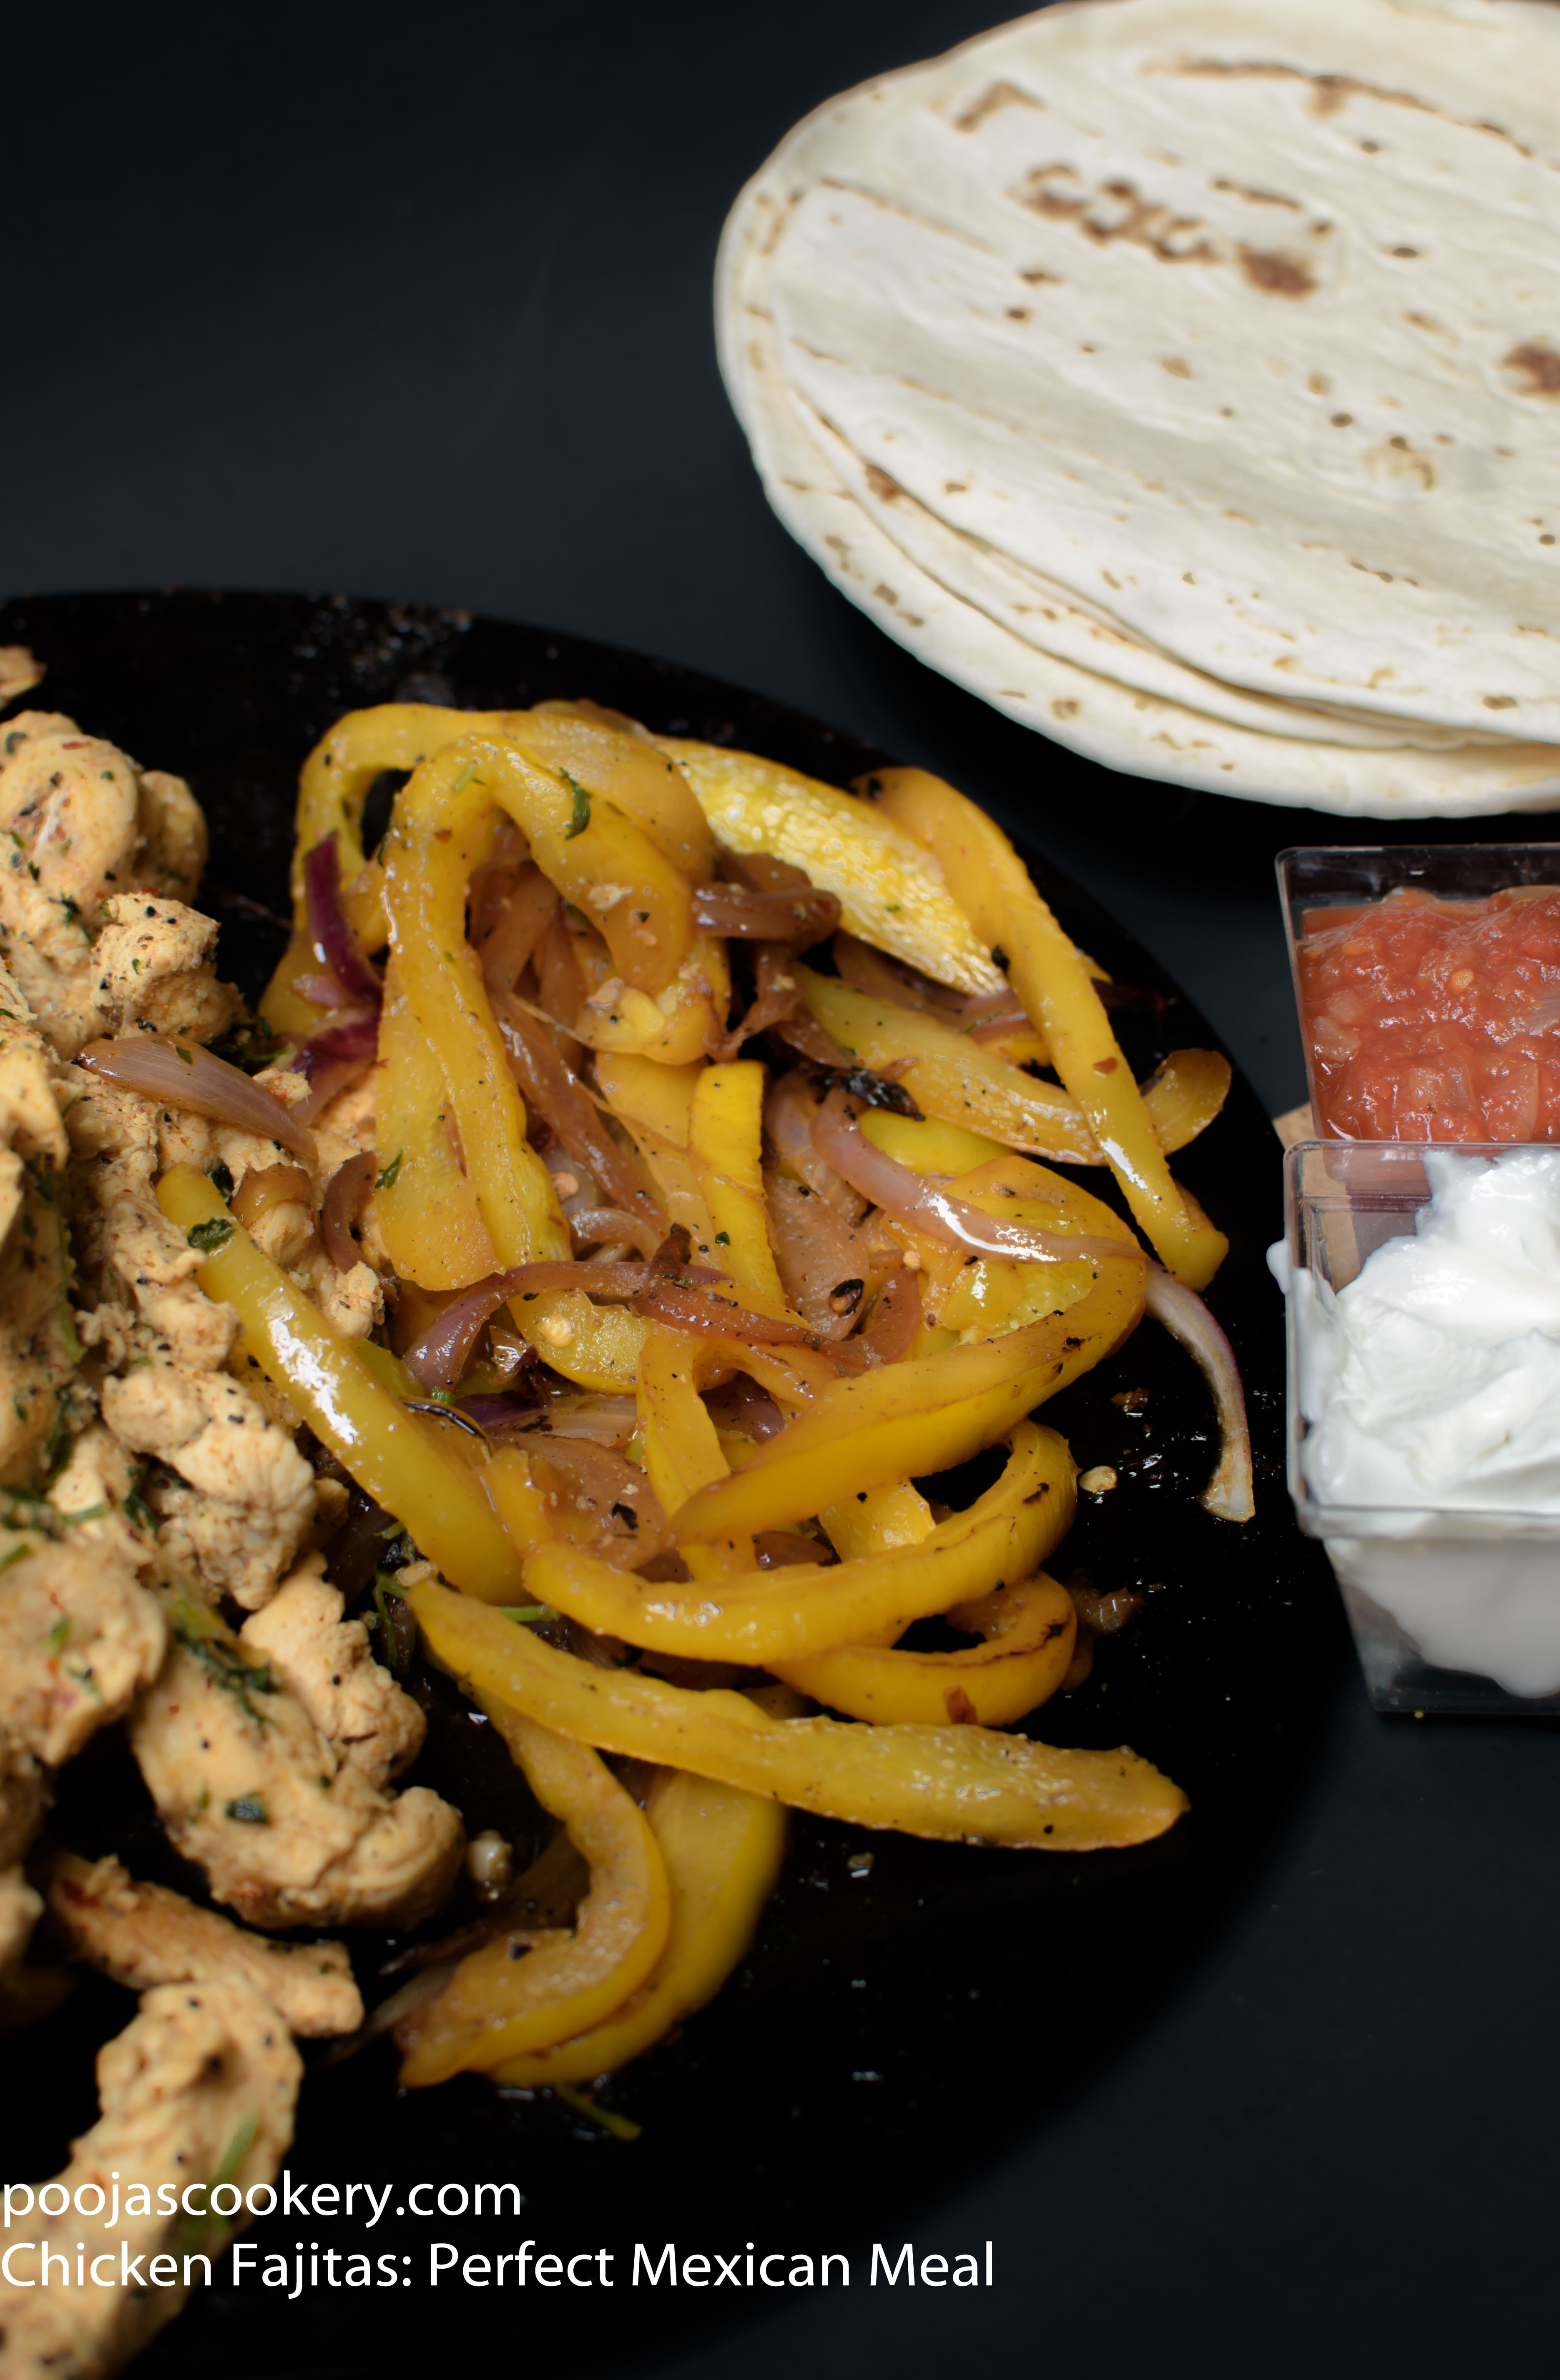 Chicken Fajitas: Perfect Mexican Meal